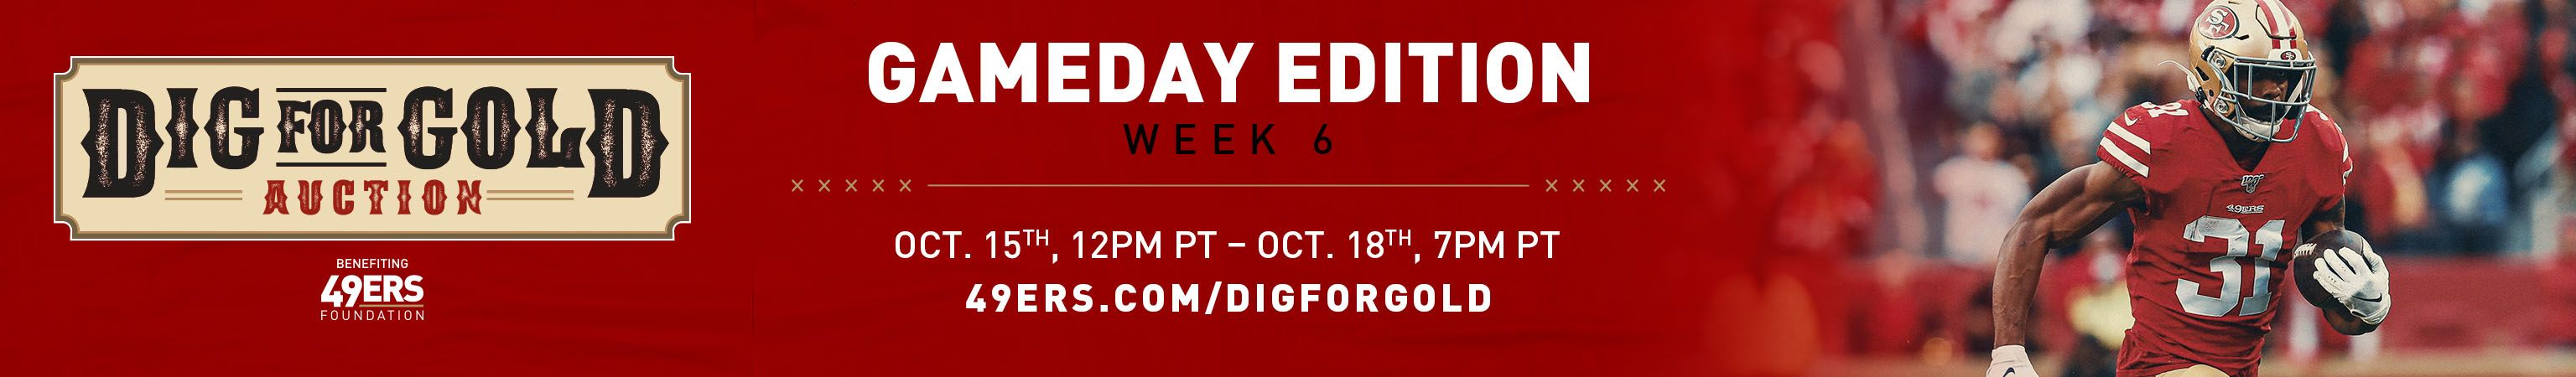 Gameday-Auction-D4G-Week6-SiteHeader-Auction-3072x450